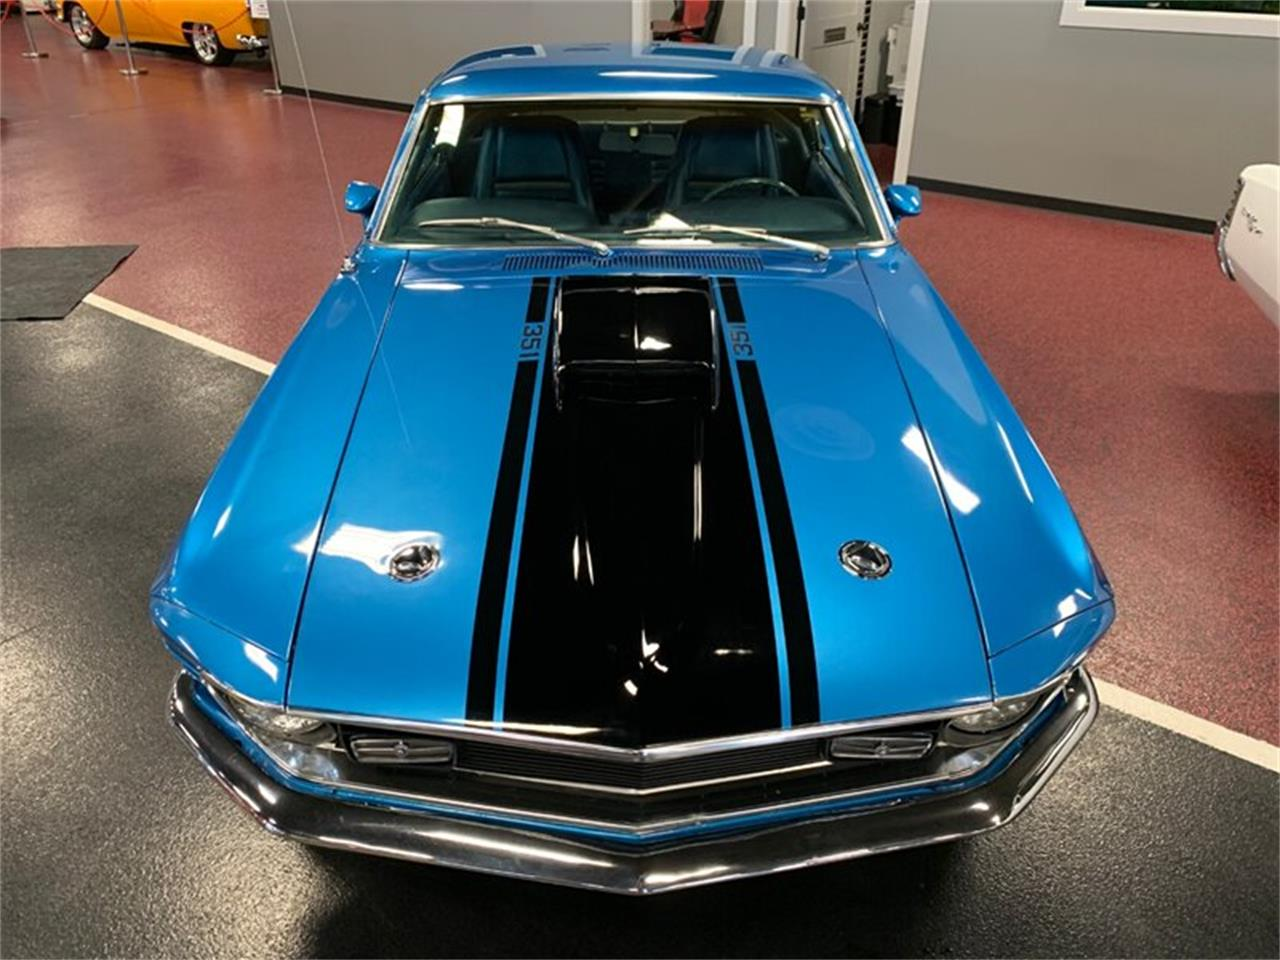 Large Picture of Classic 1970 Mustang Mach 1 - $37,900.00 Offered by Rides Auto Sales - QGAG